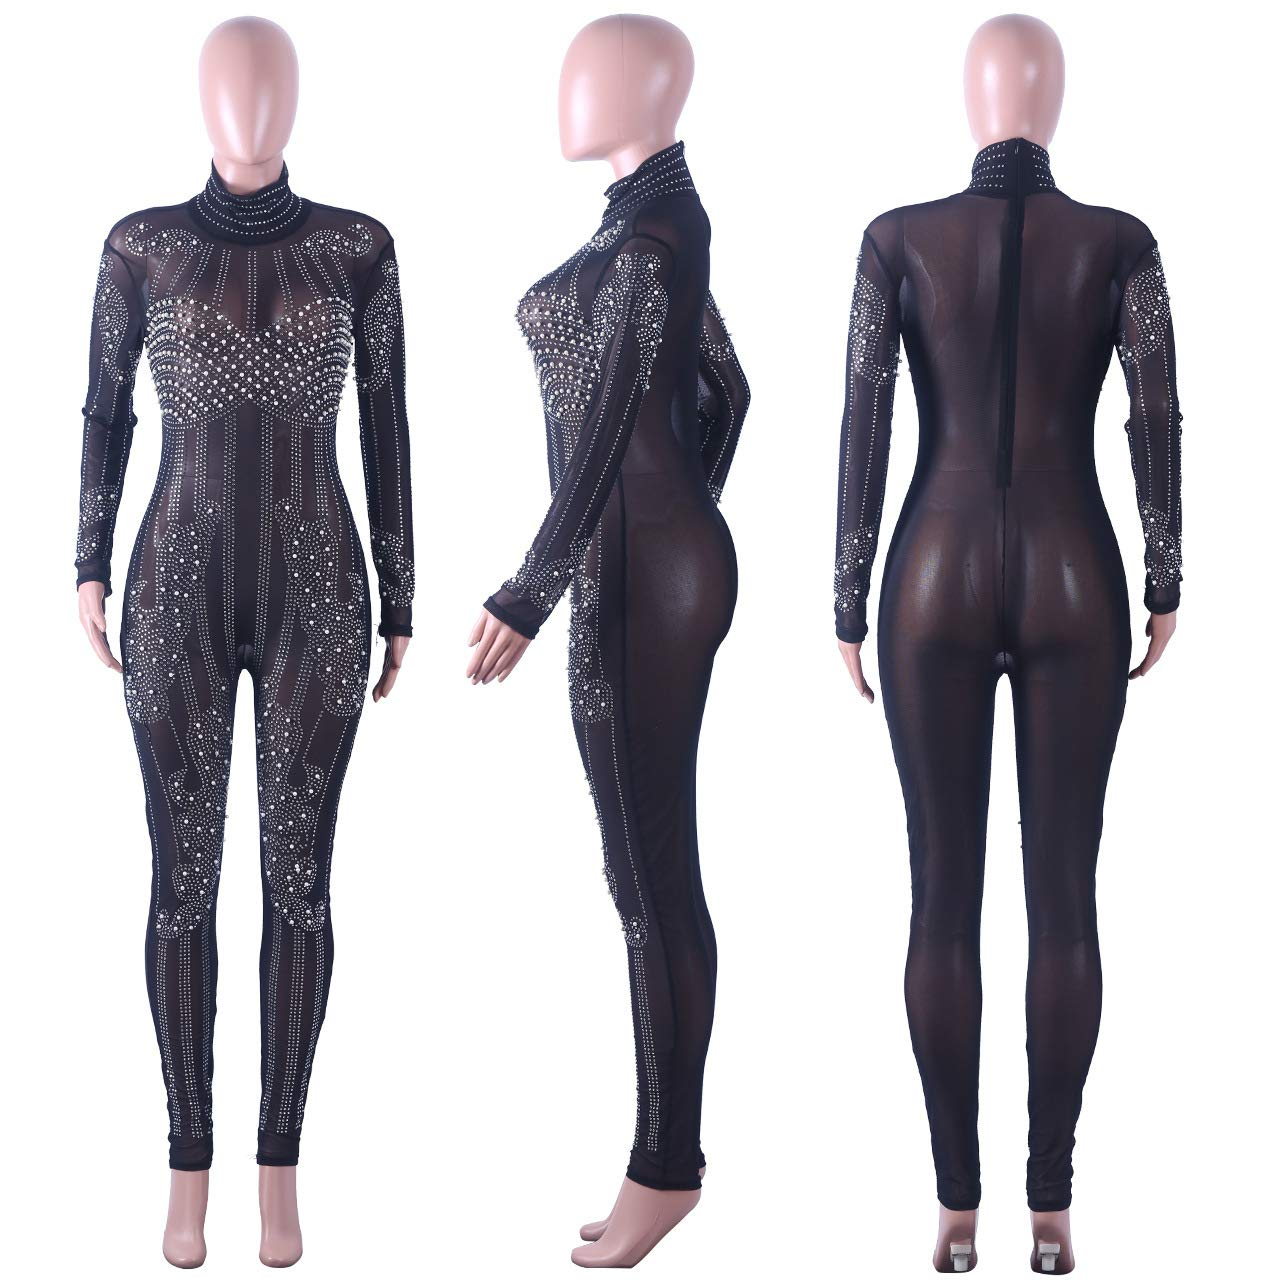 80edcdf4490 Amazon.com  Chemenwin Women s Sexy Mesh See Through Sequin Zipper Rhinestone  Bodycon Clubwear Jumpsuit Rompers One Piece Overall  Clothing